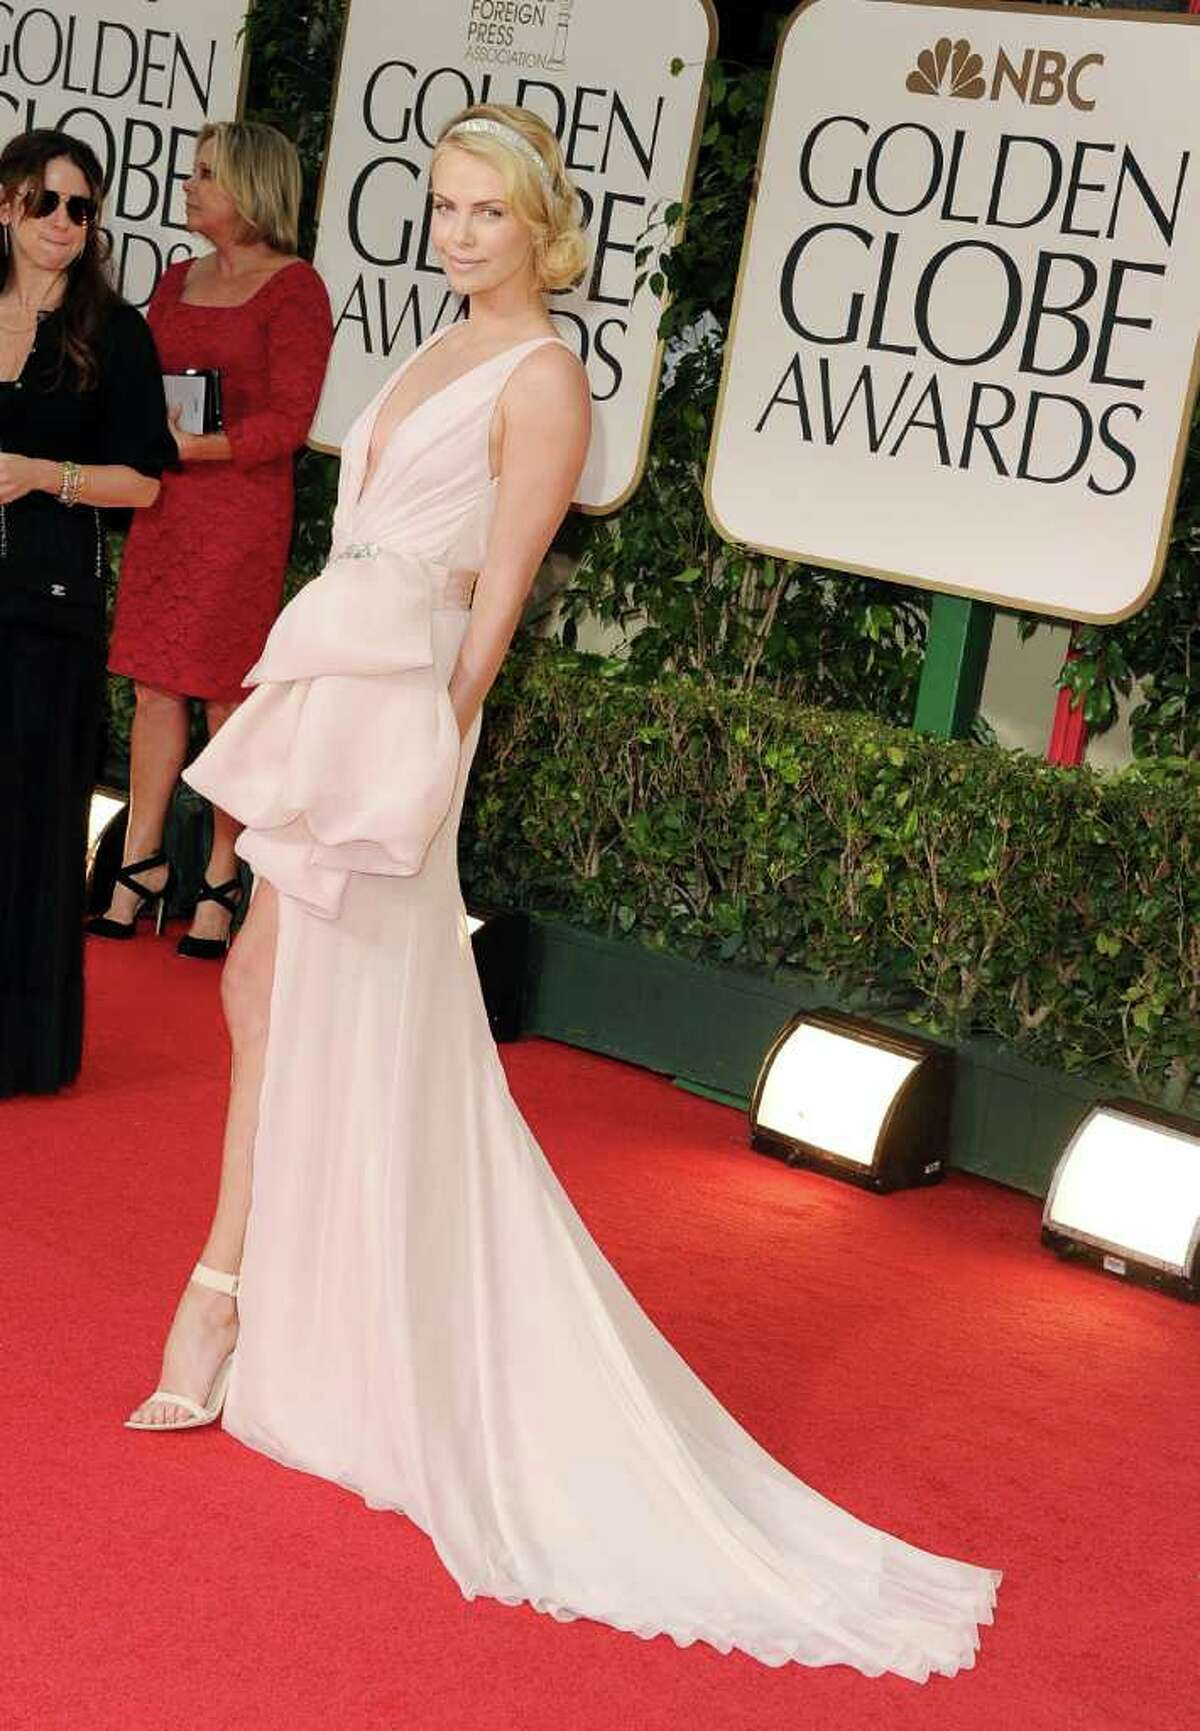 Charlize Theron brought old Hollywood glamour to the Globes in Dior Couture.